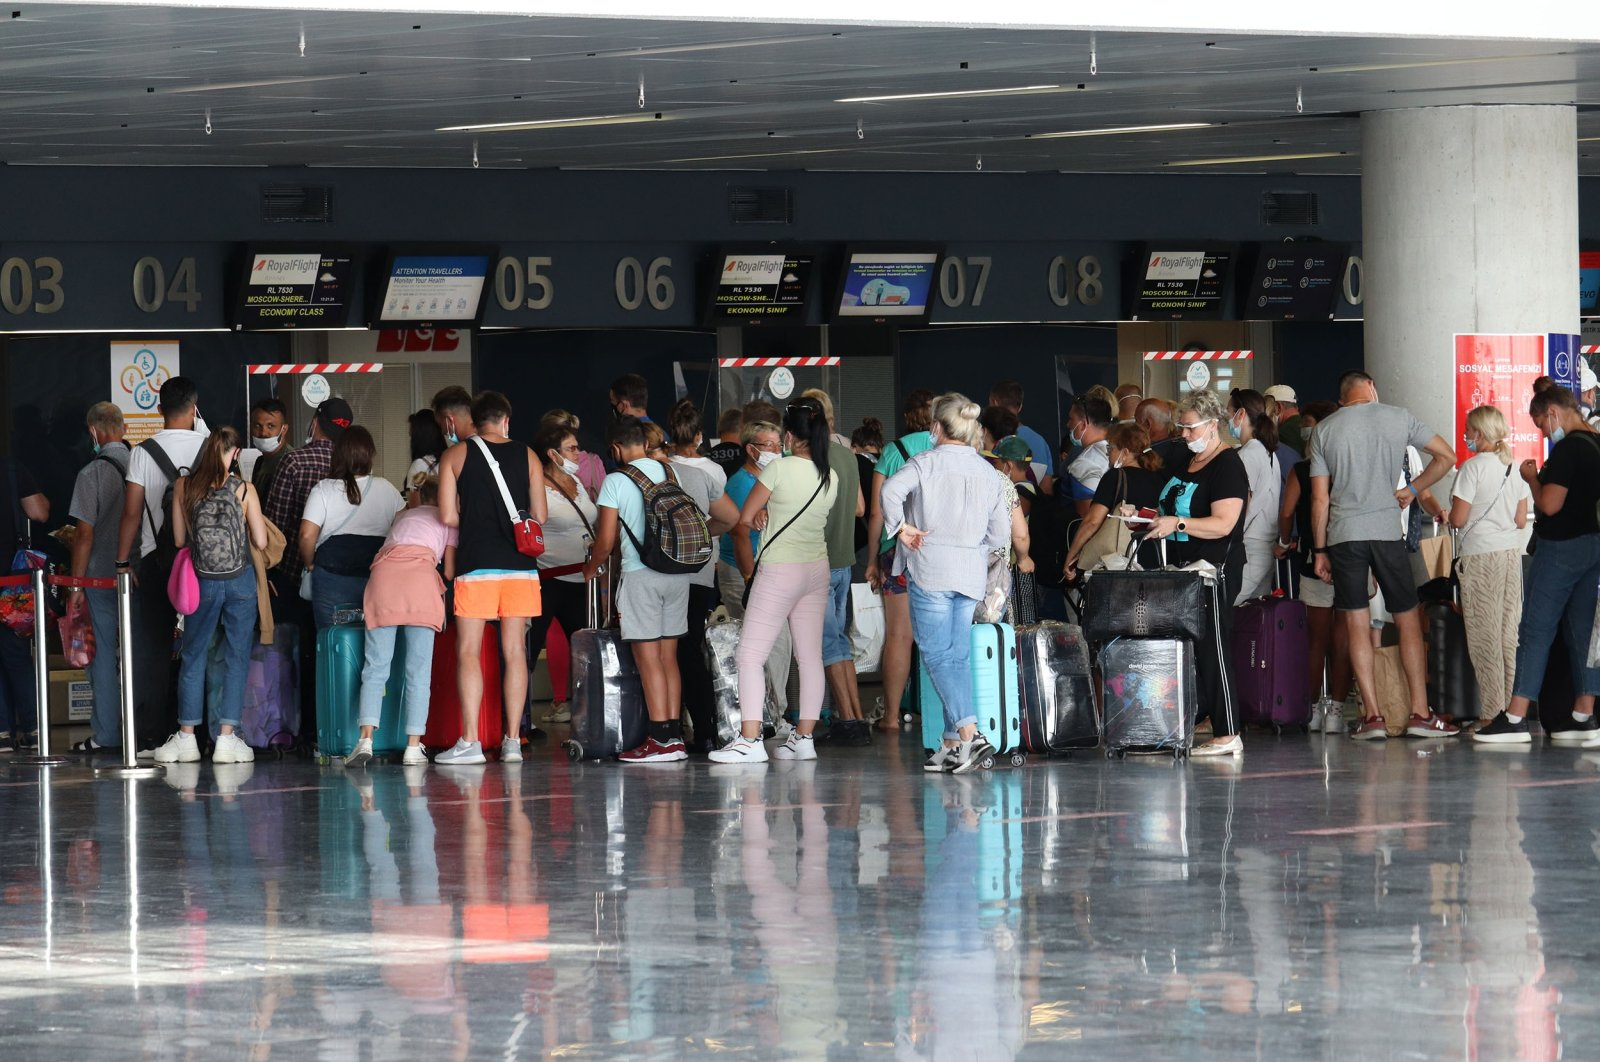 Tourists in masks standing with luggage wait in line at the Milas-Bodrum Airport, Bodrum, southwestern Turkey, Sept. 28, 2020. (Shutterstock Photo)